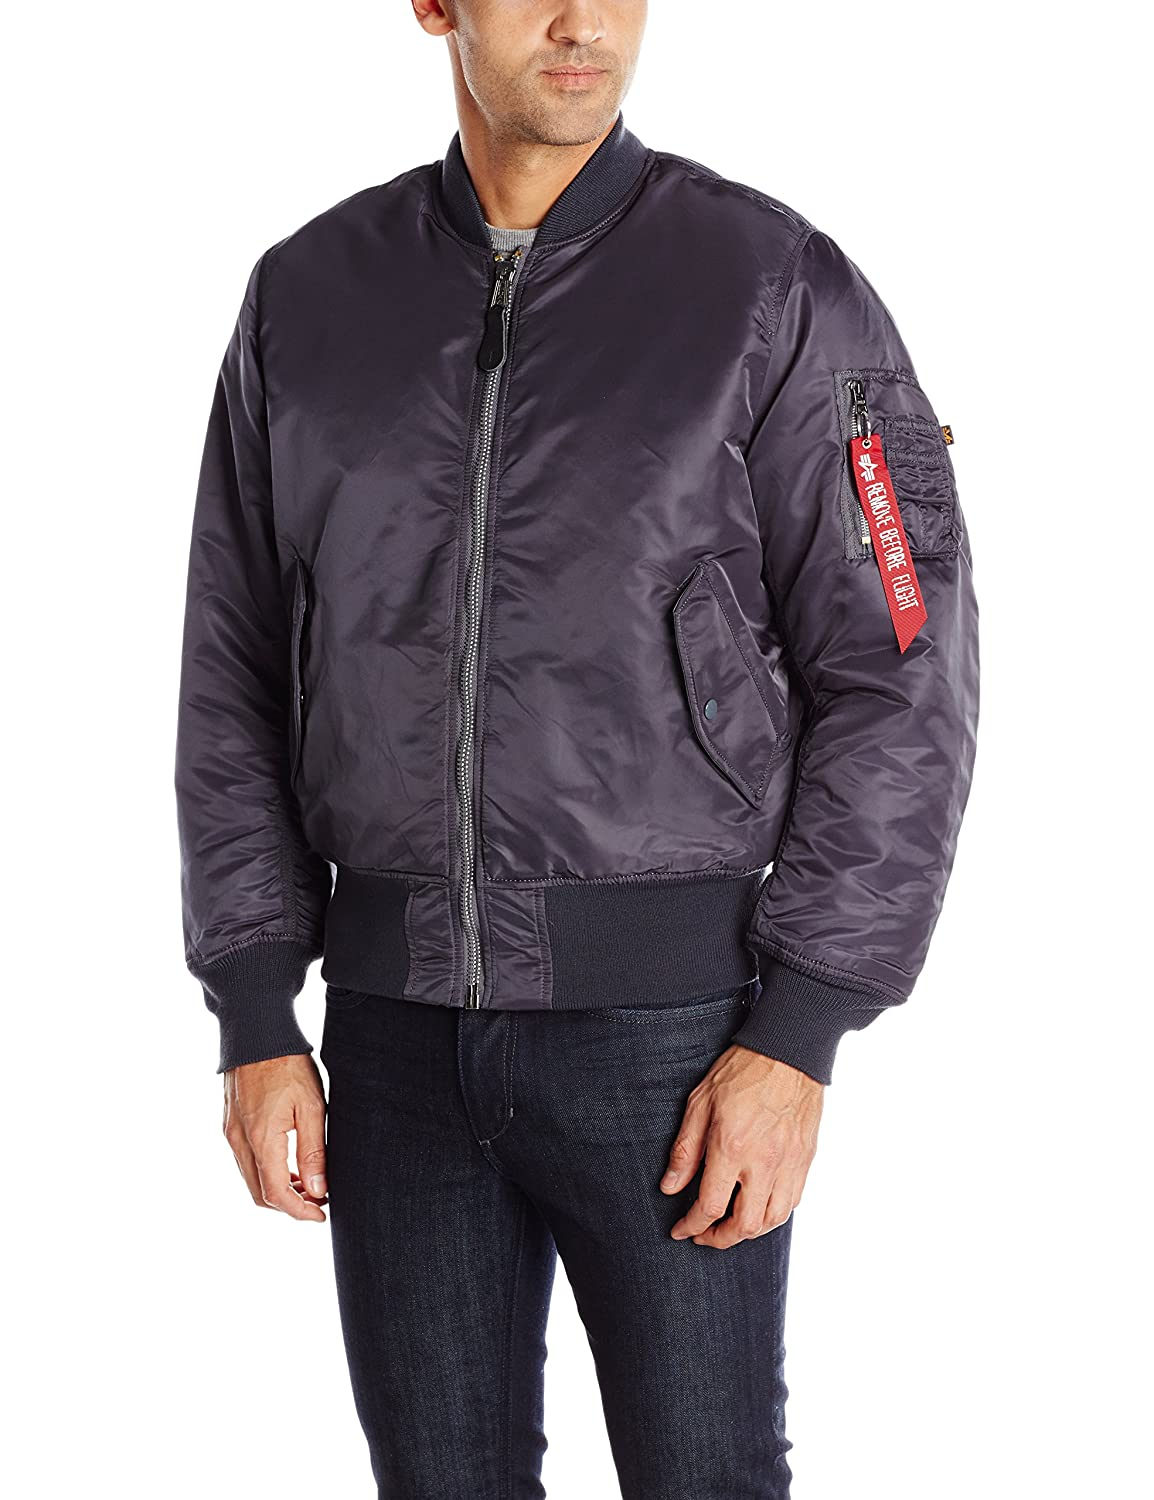 Alpha Industries Men's MA-1 Bomber Flight Jacket MJM21000C1